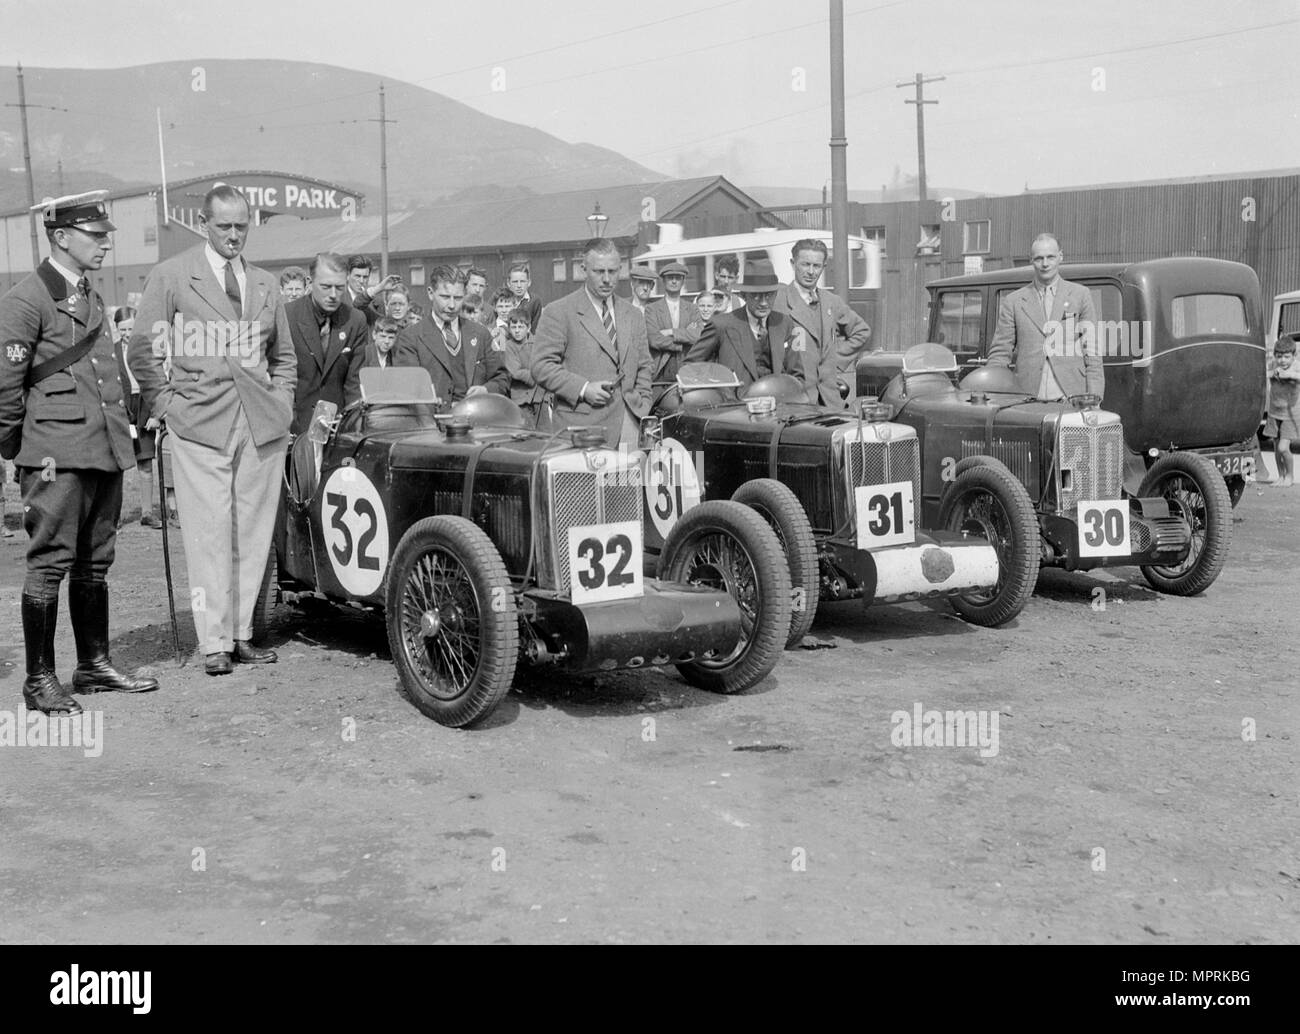 Three MG C type Midgets at the RAC TT Race, Ards Circuit, Belfast, 1932. Artist: Bill Brunell. - Stock Image